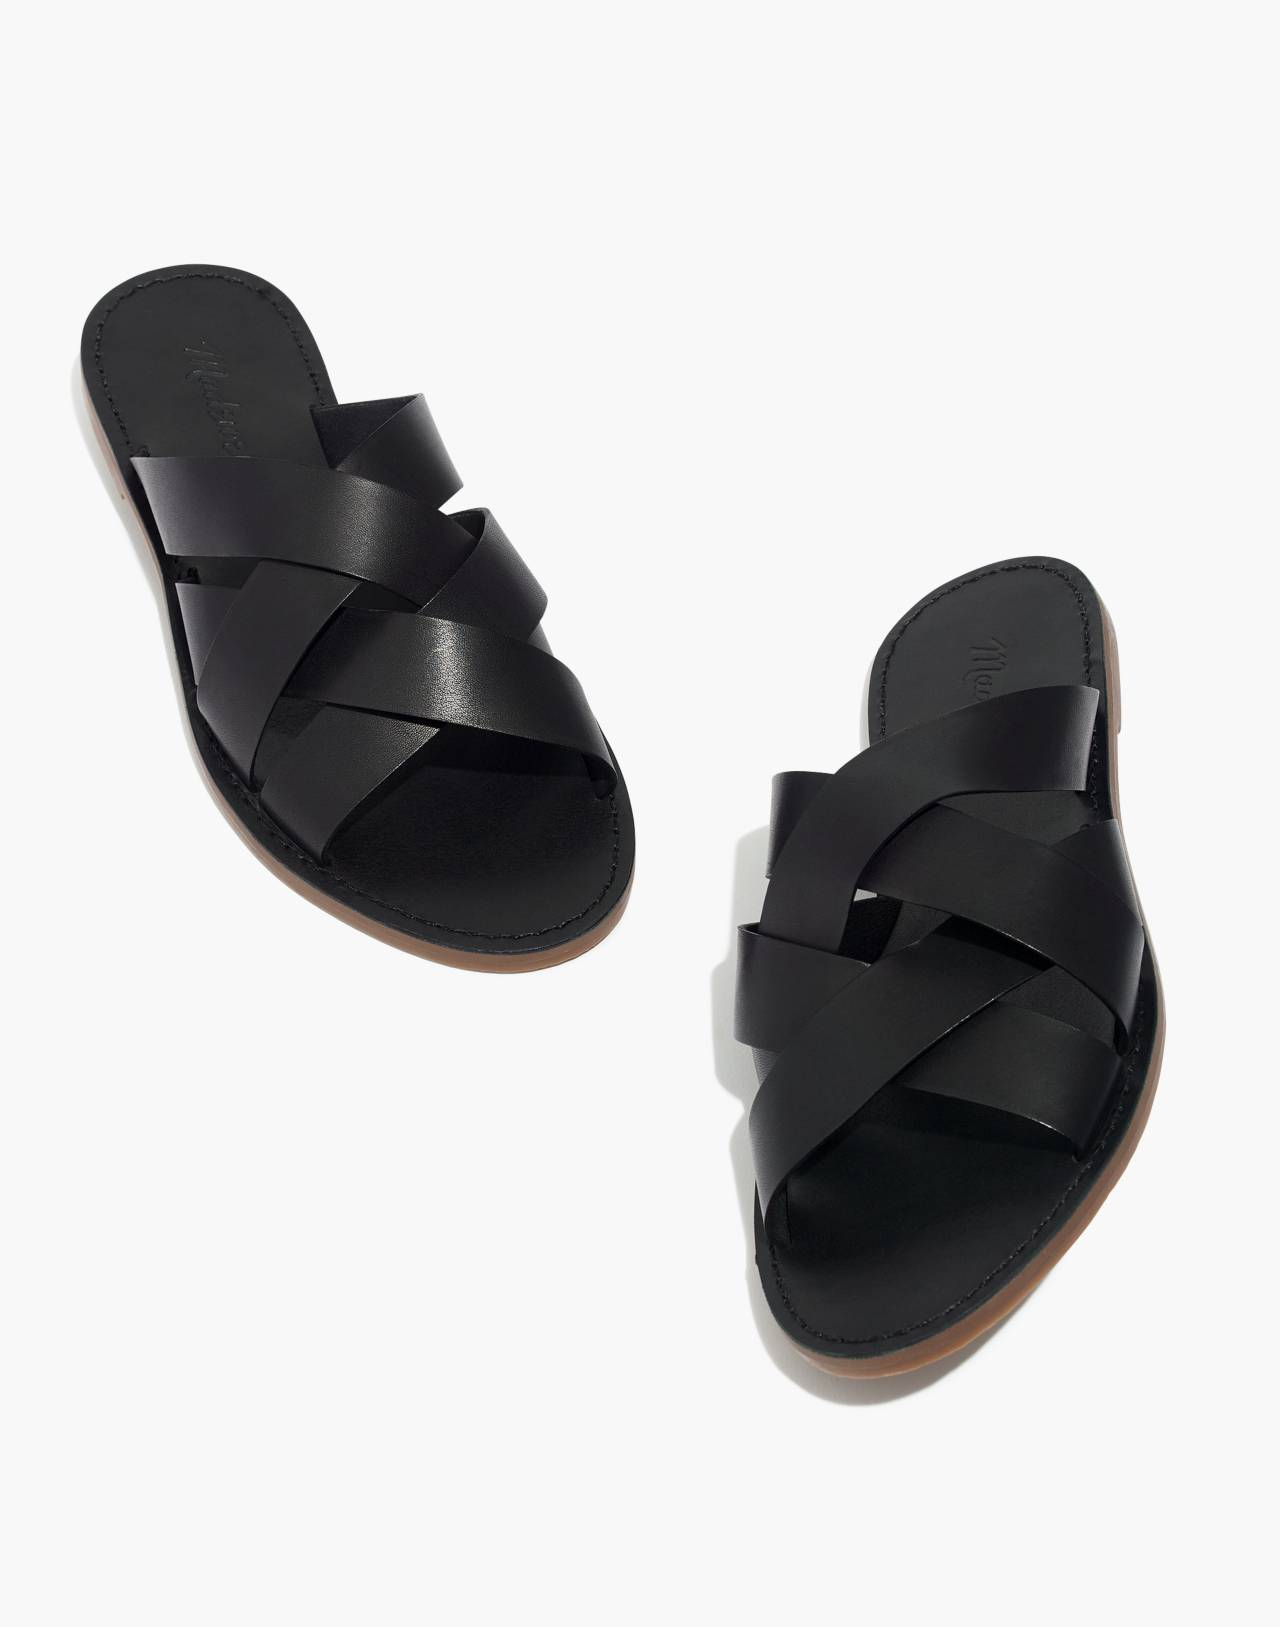 The Boardwalk Woven Slide Sandal in true black image 1